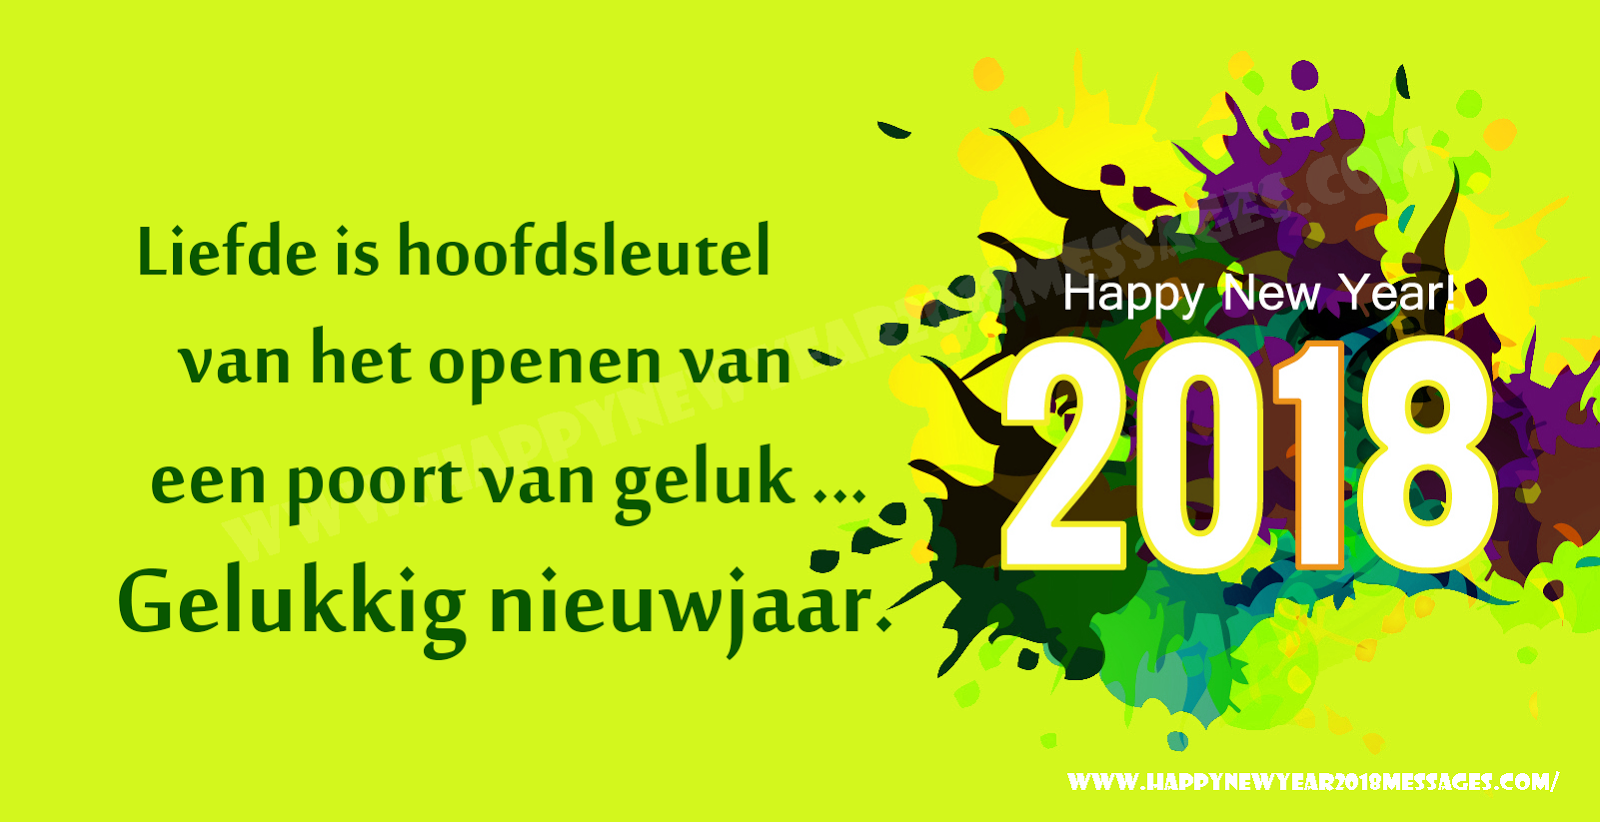 Quotes 2018 Advance Happy New Year 2018 Wishes Quotes Messages In Dutch